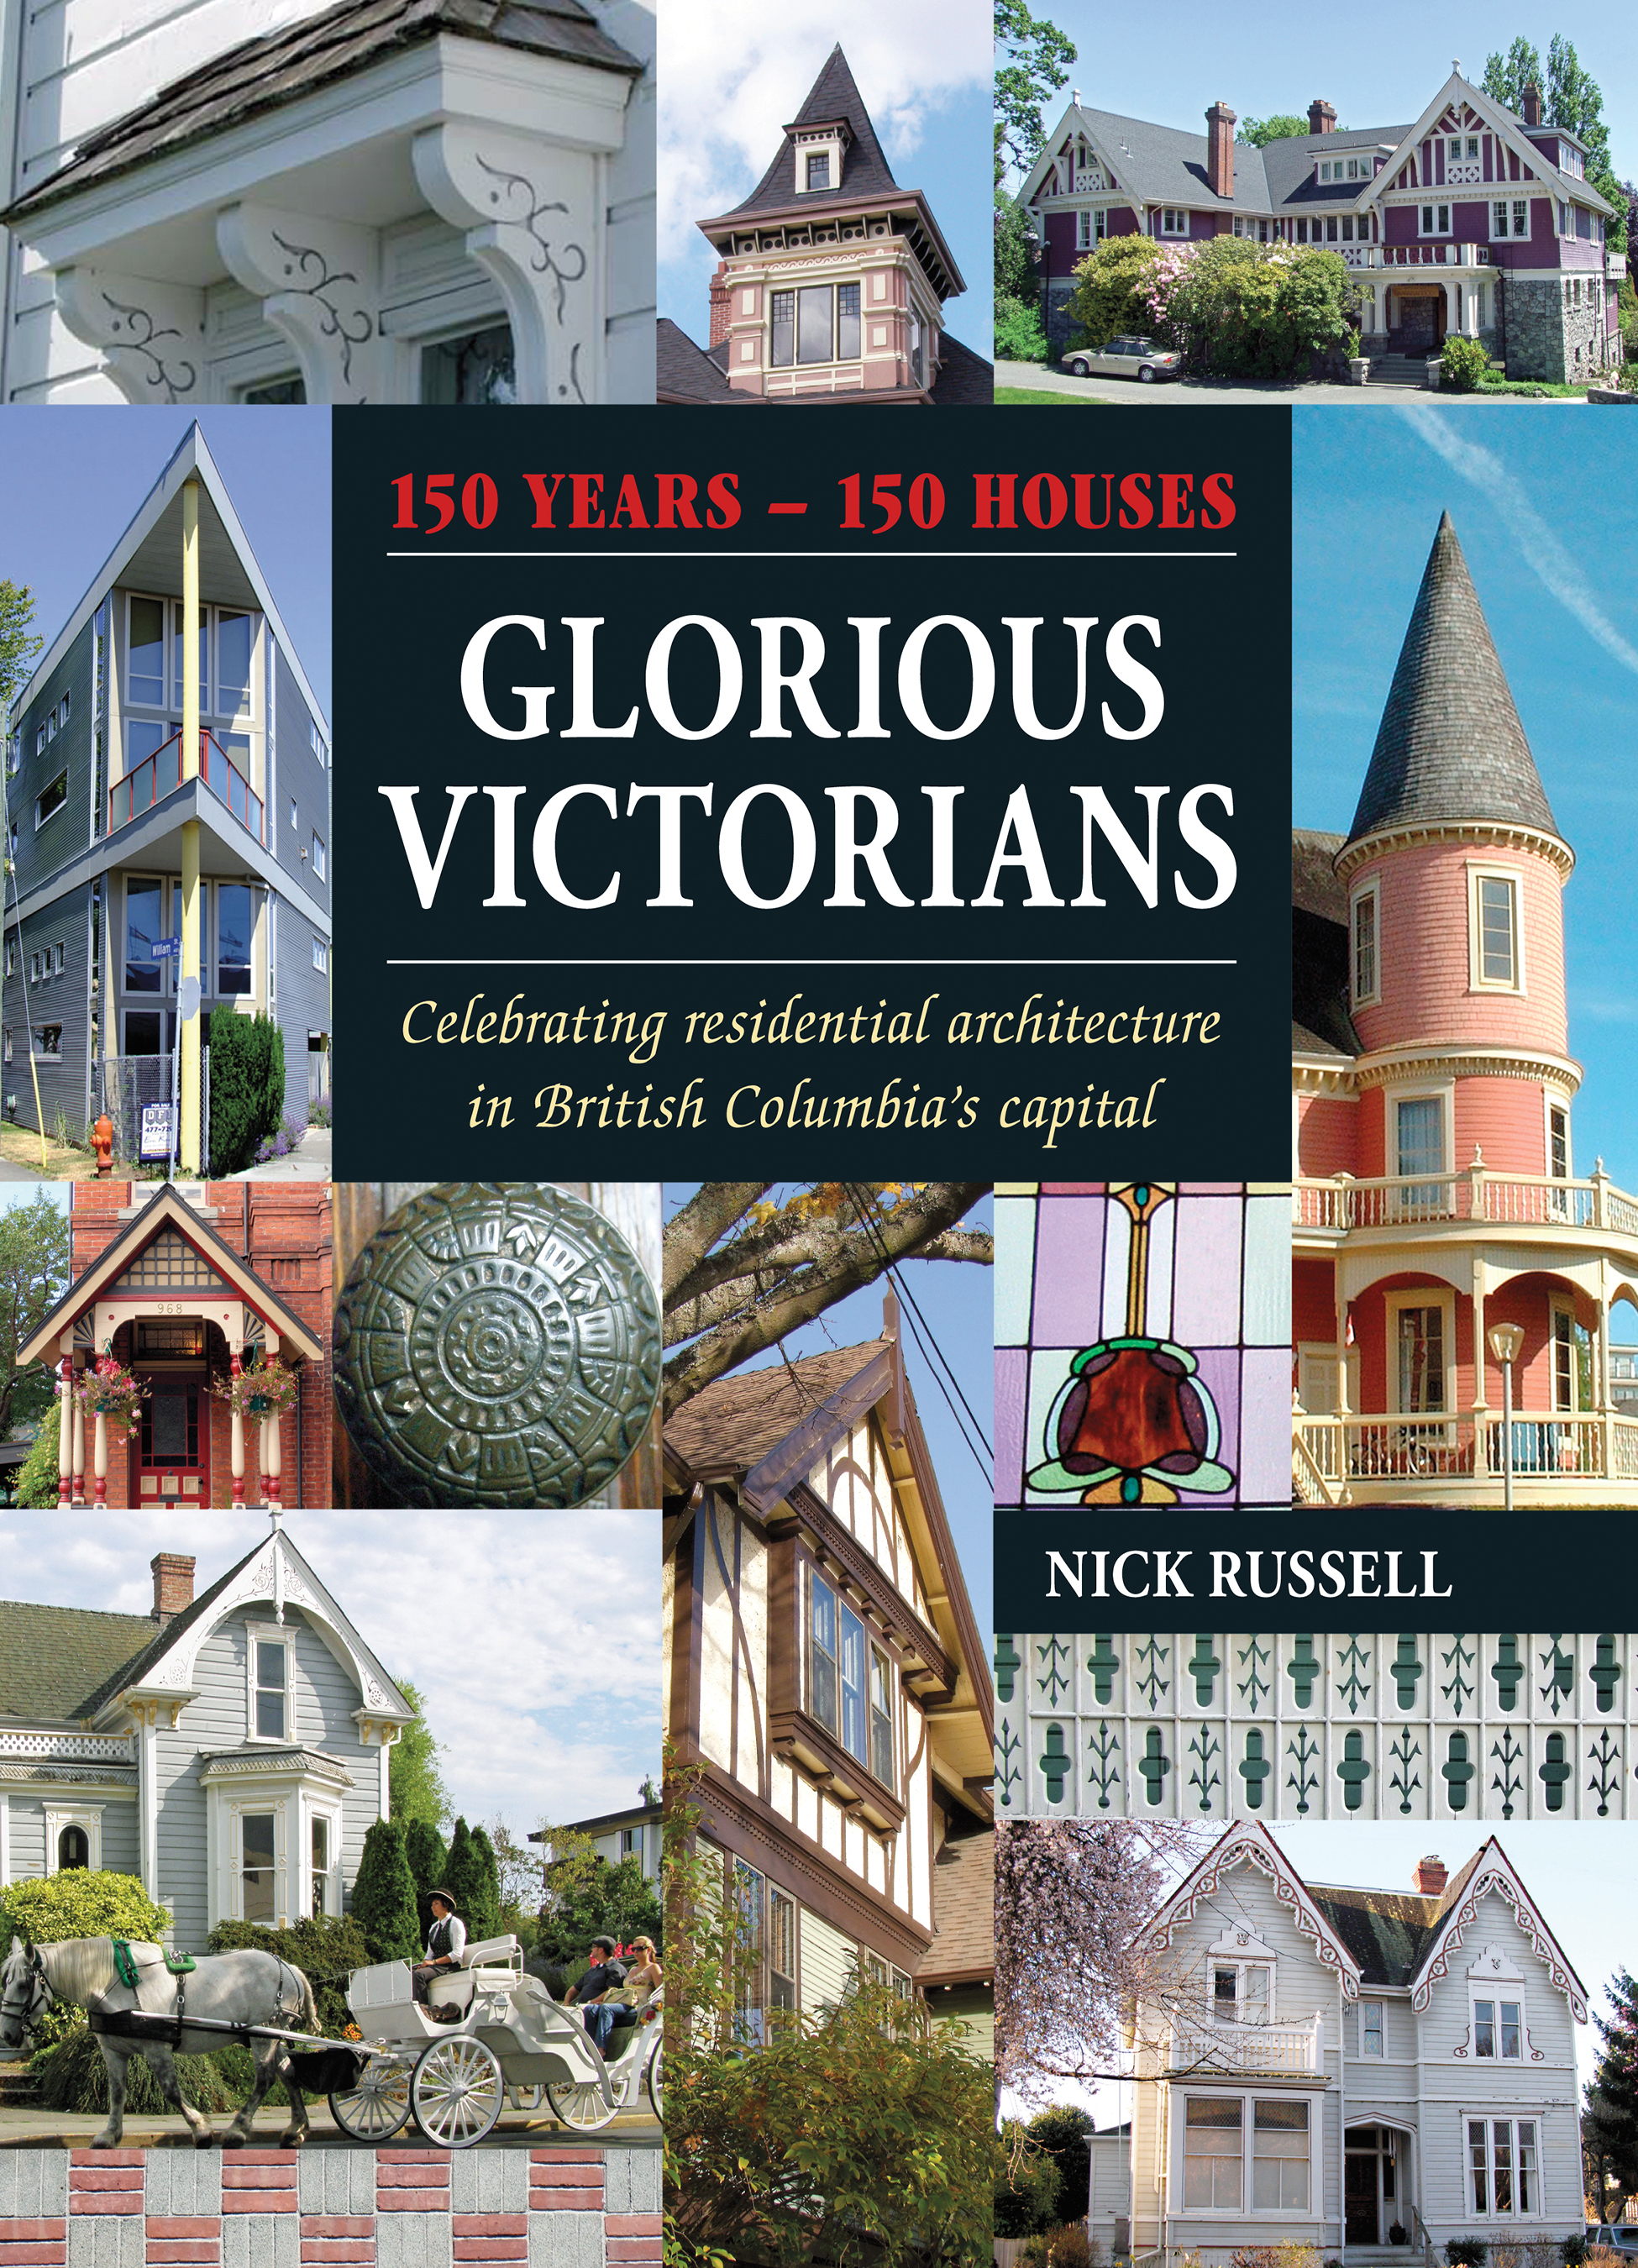 Glorious Victorians by Nick Russell